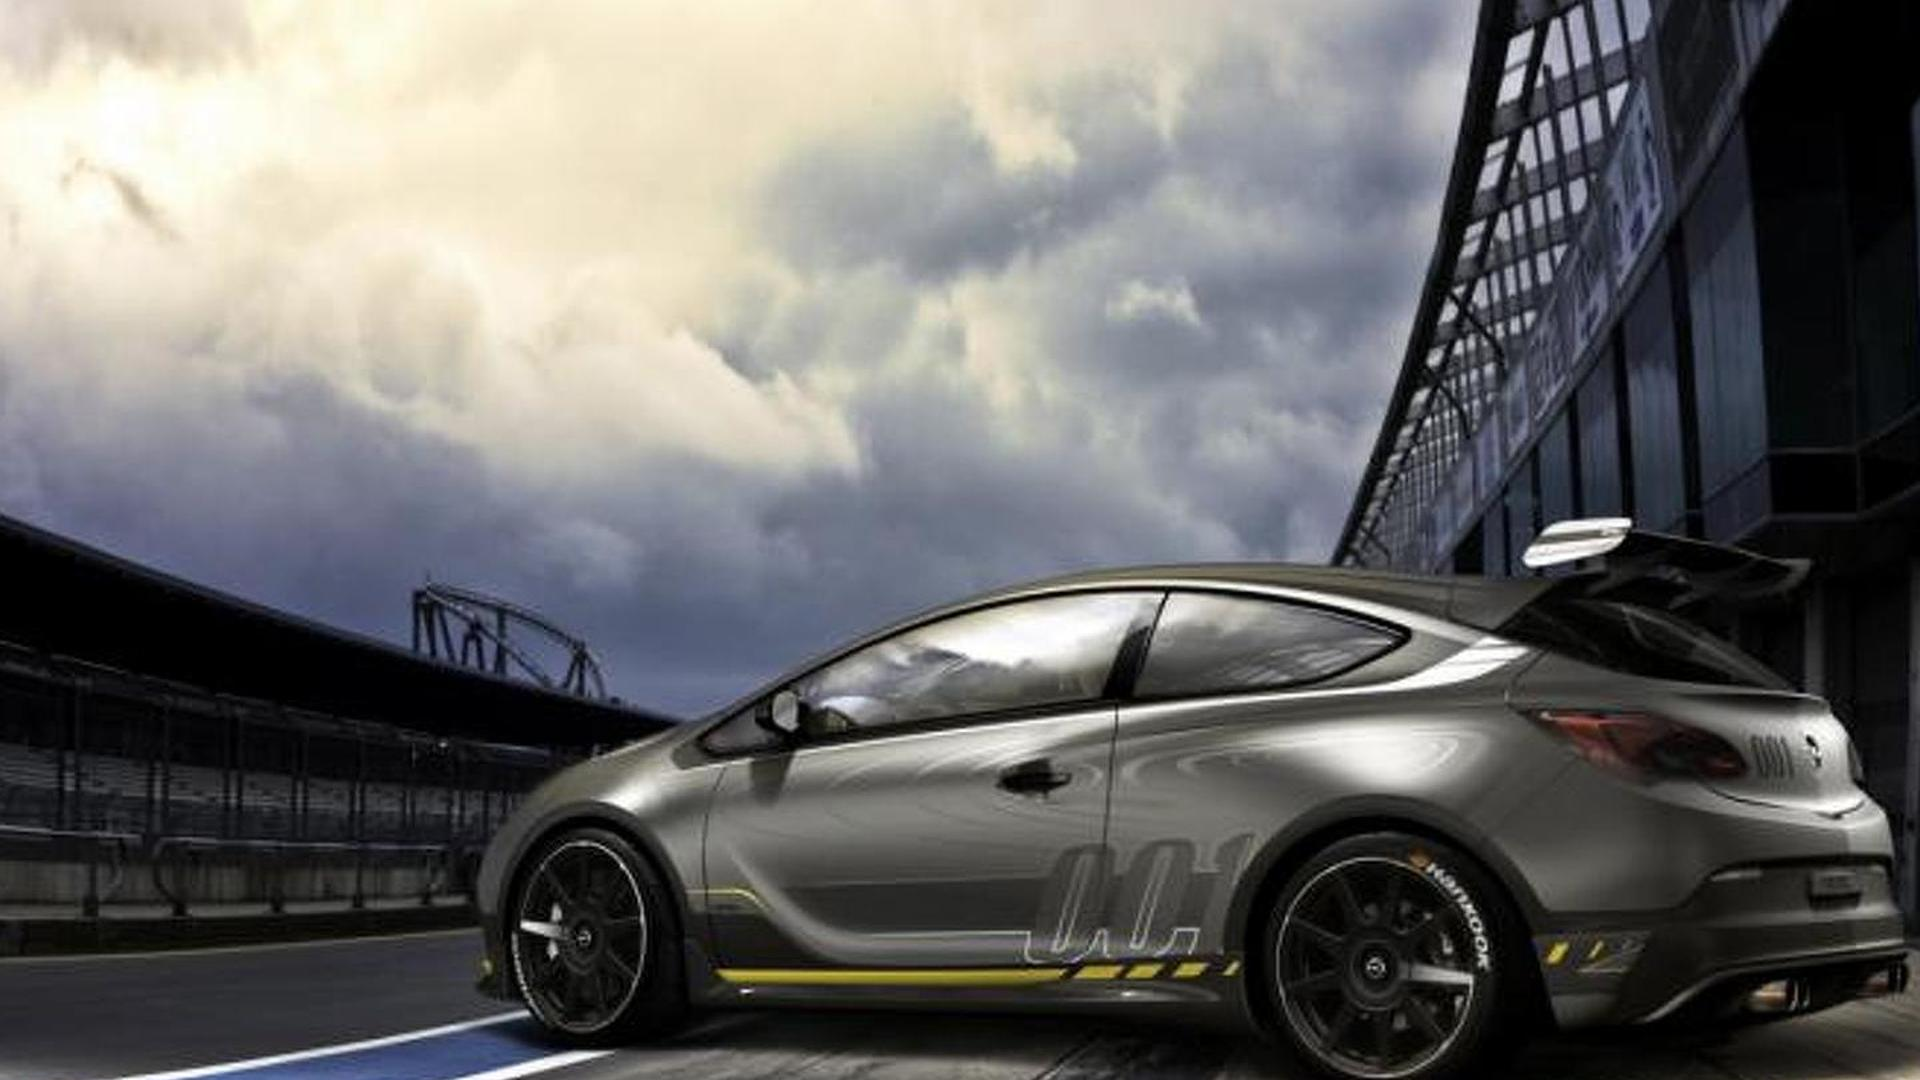 Opel Astra Opc Extreme Announced Will Be The Fastest Street Legal